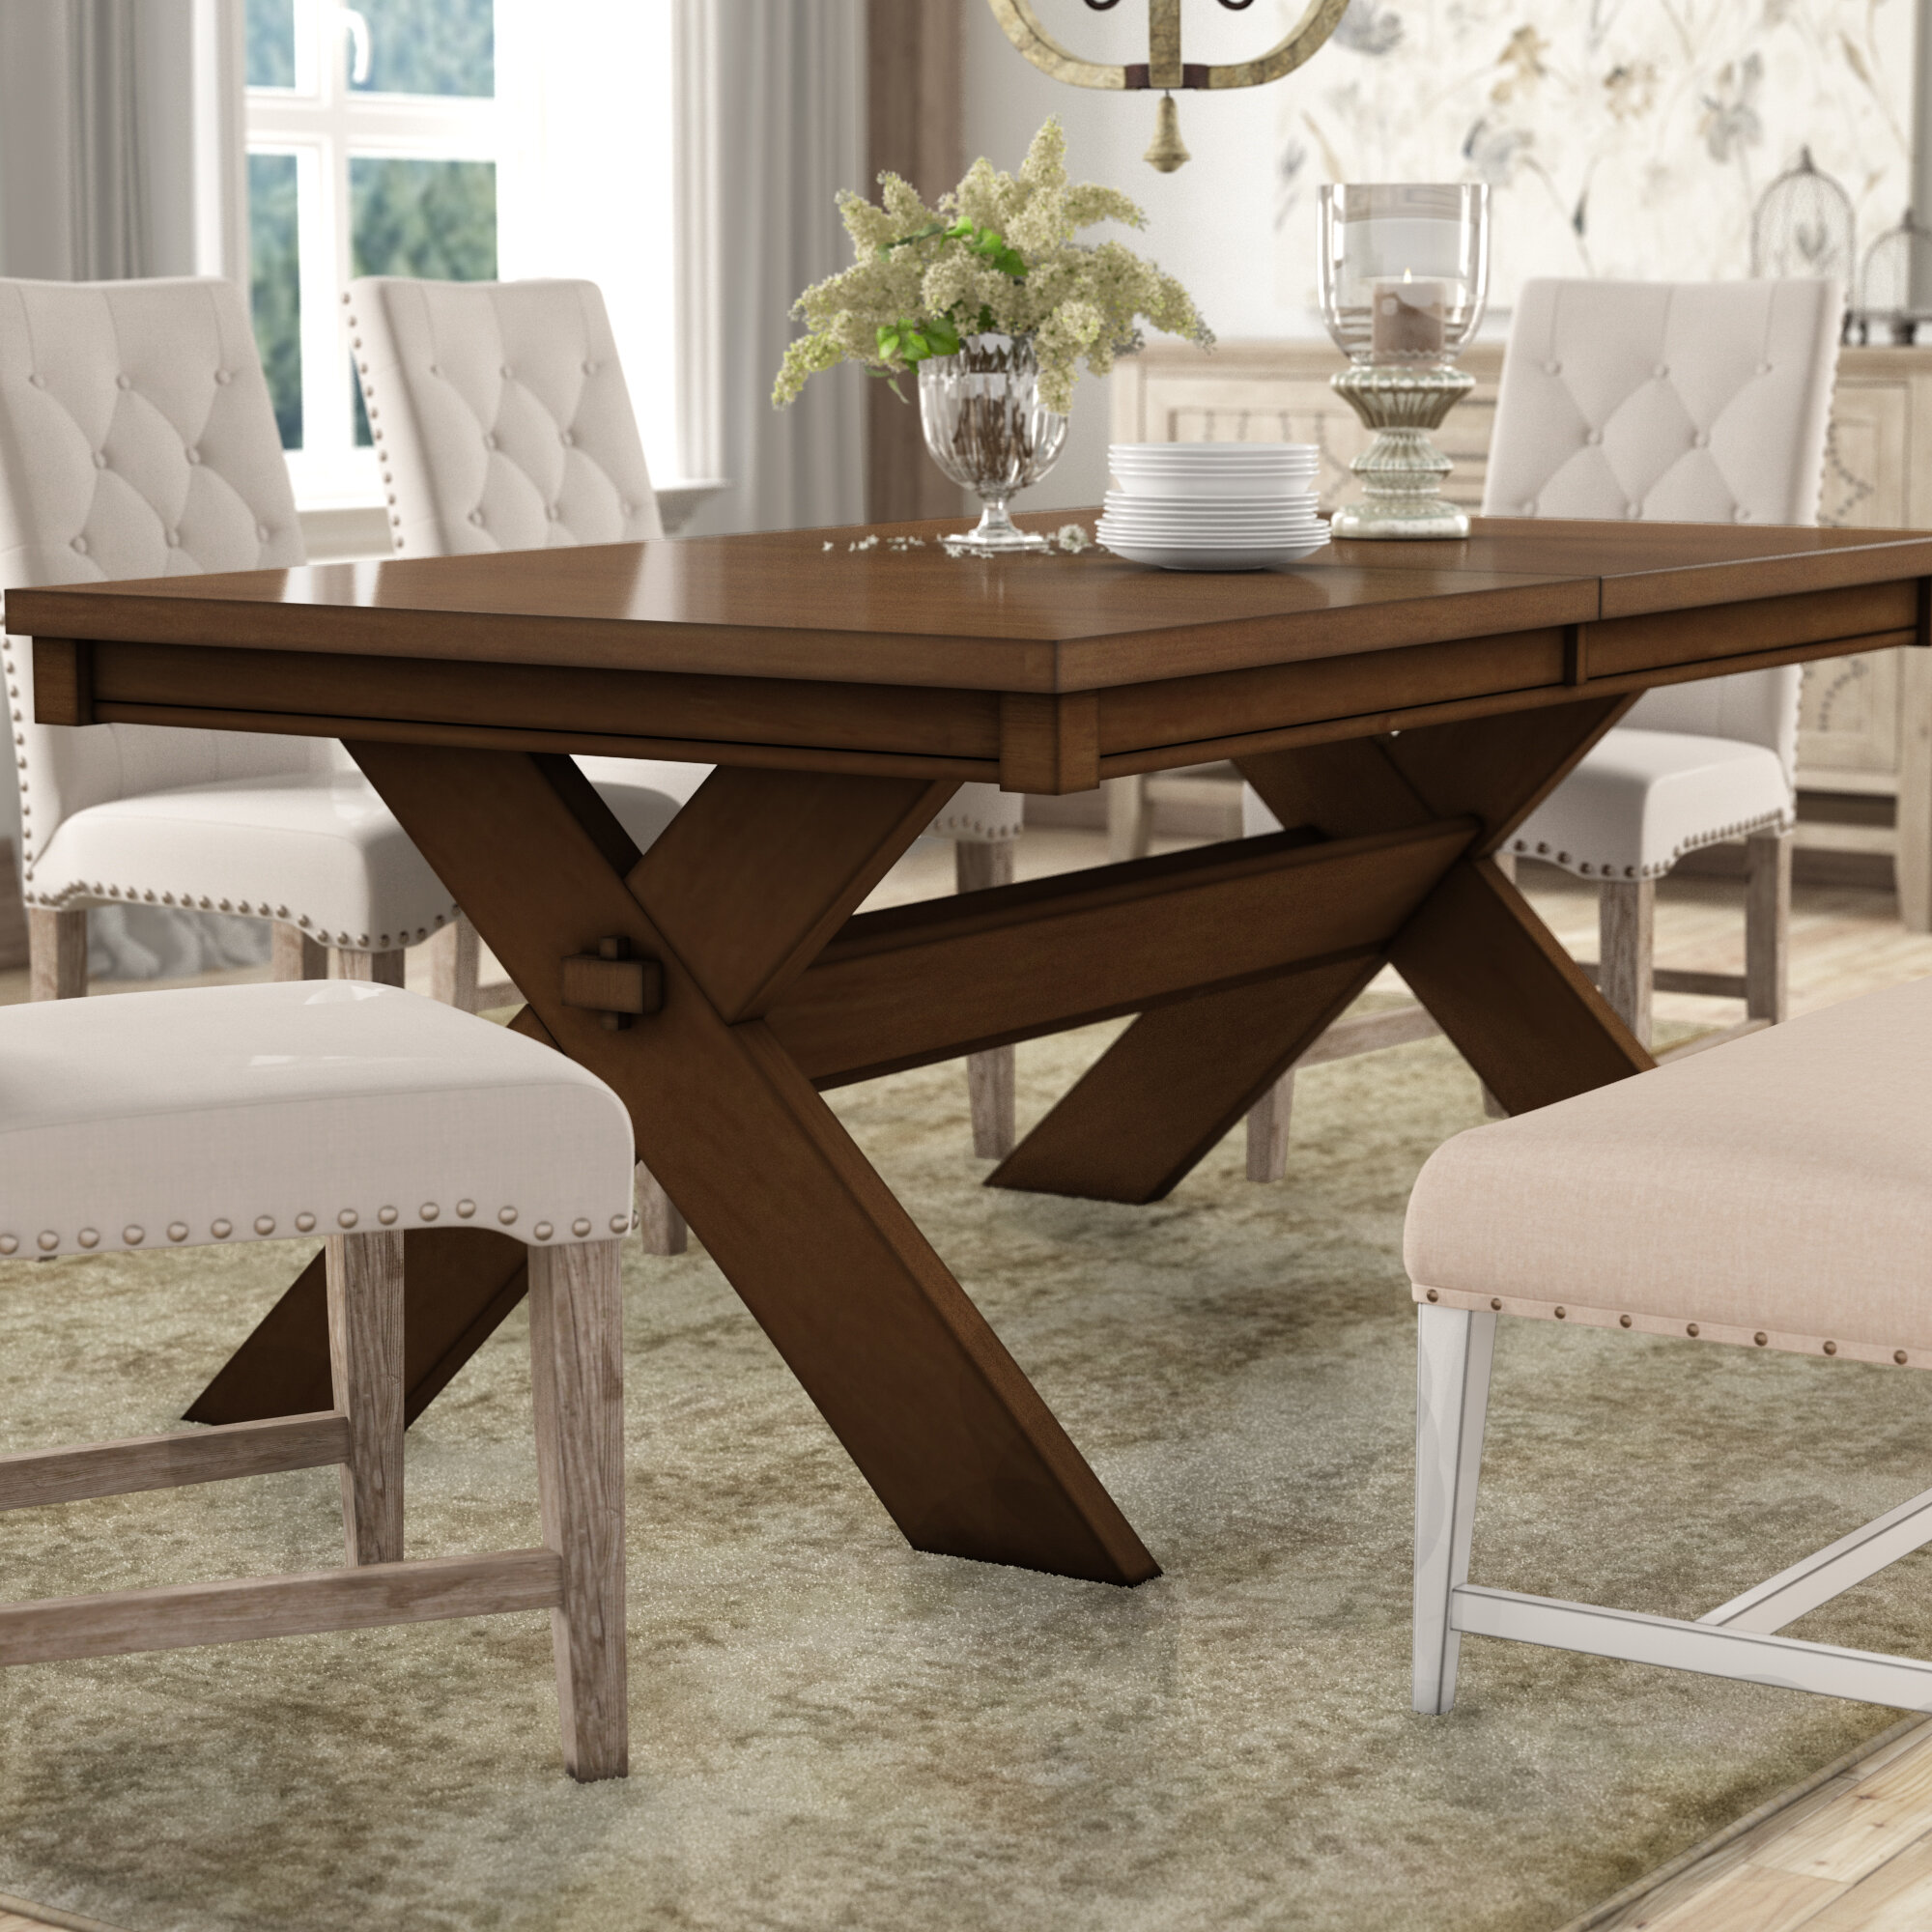 Laurel Foundry Modern Farmhouse Isabell Acacia Erfly Leaf Dining Table Reviews Wayfair